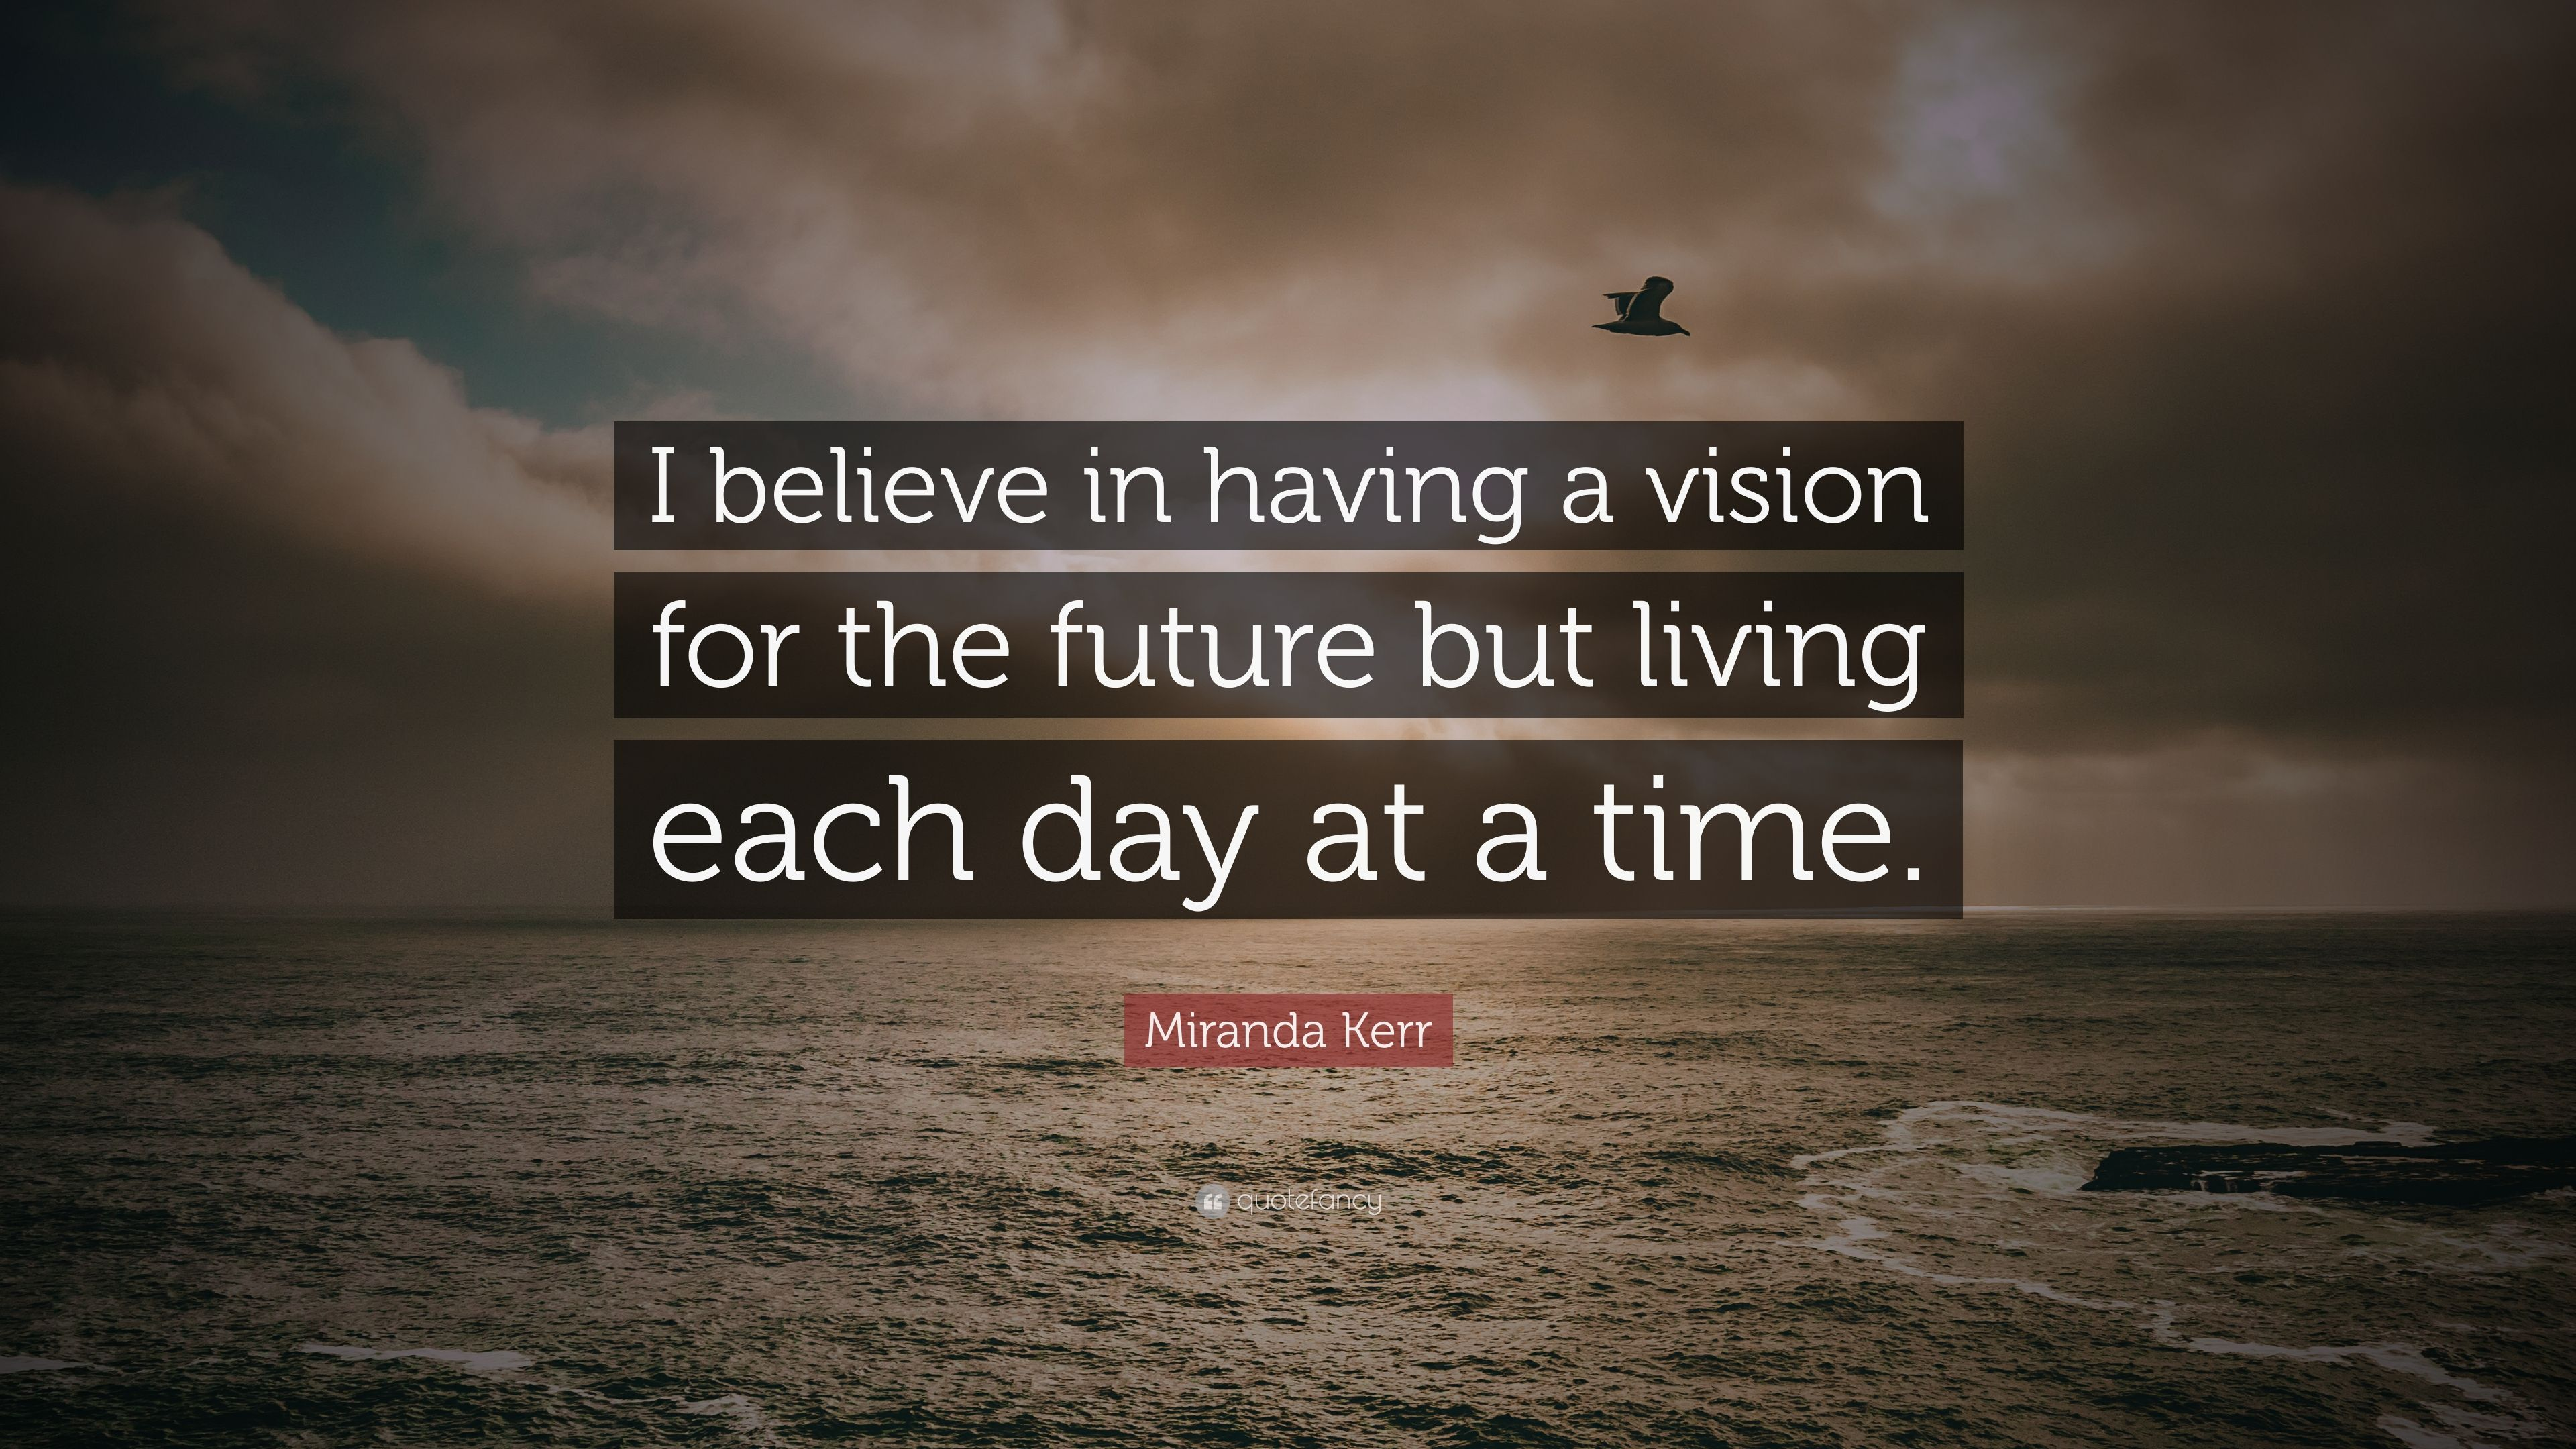 Miranda Kerr Quote I Believe In Having A Vision For The Future But Living Each Day At A Time 7 Wallpapers Quotefancy